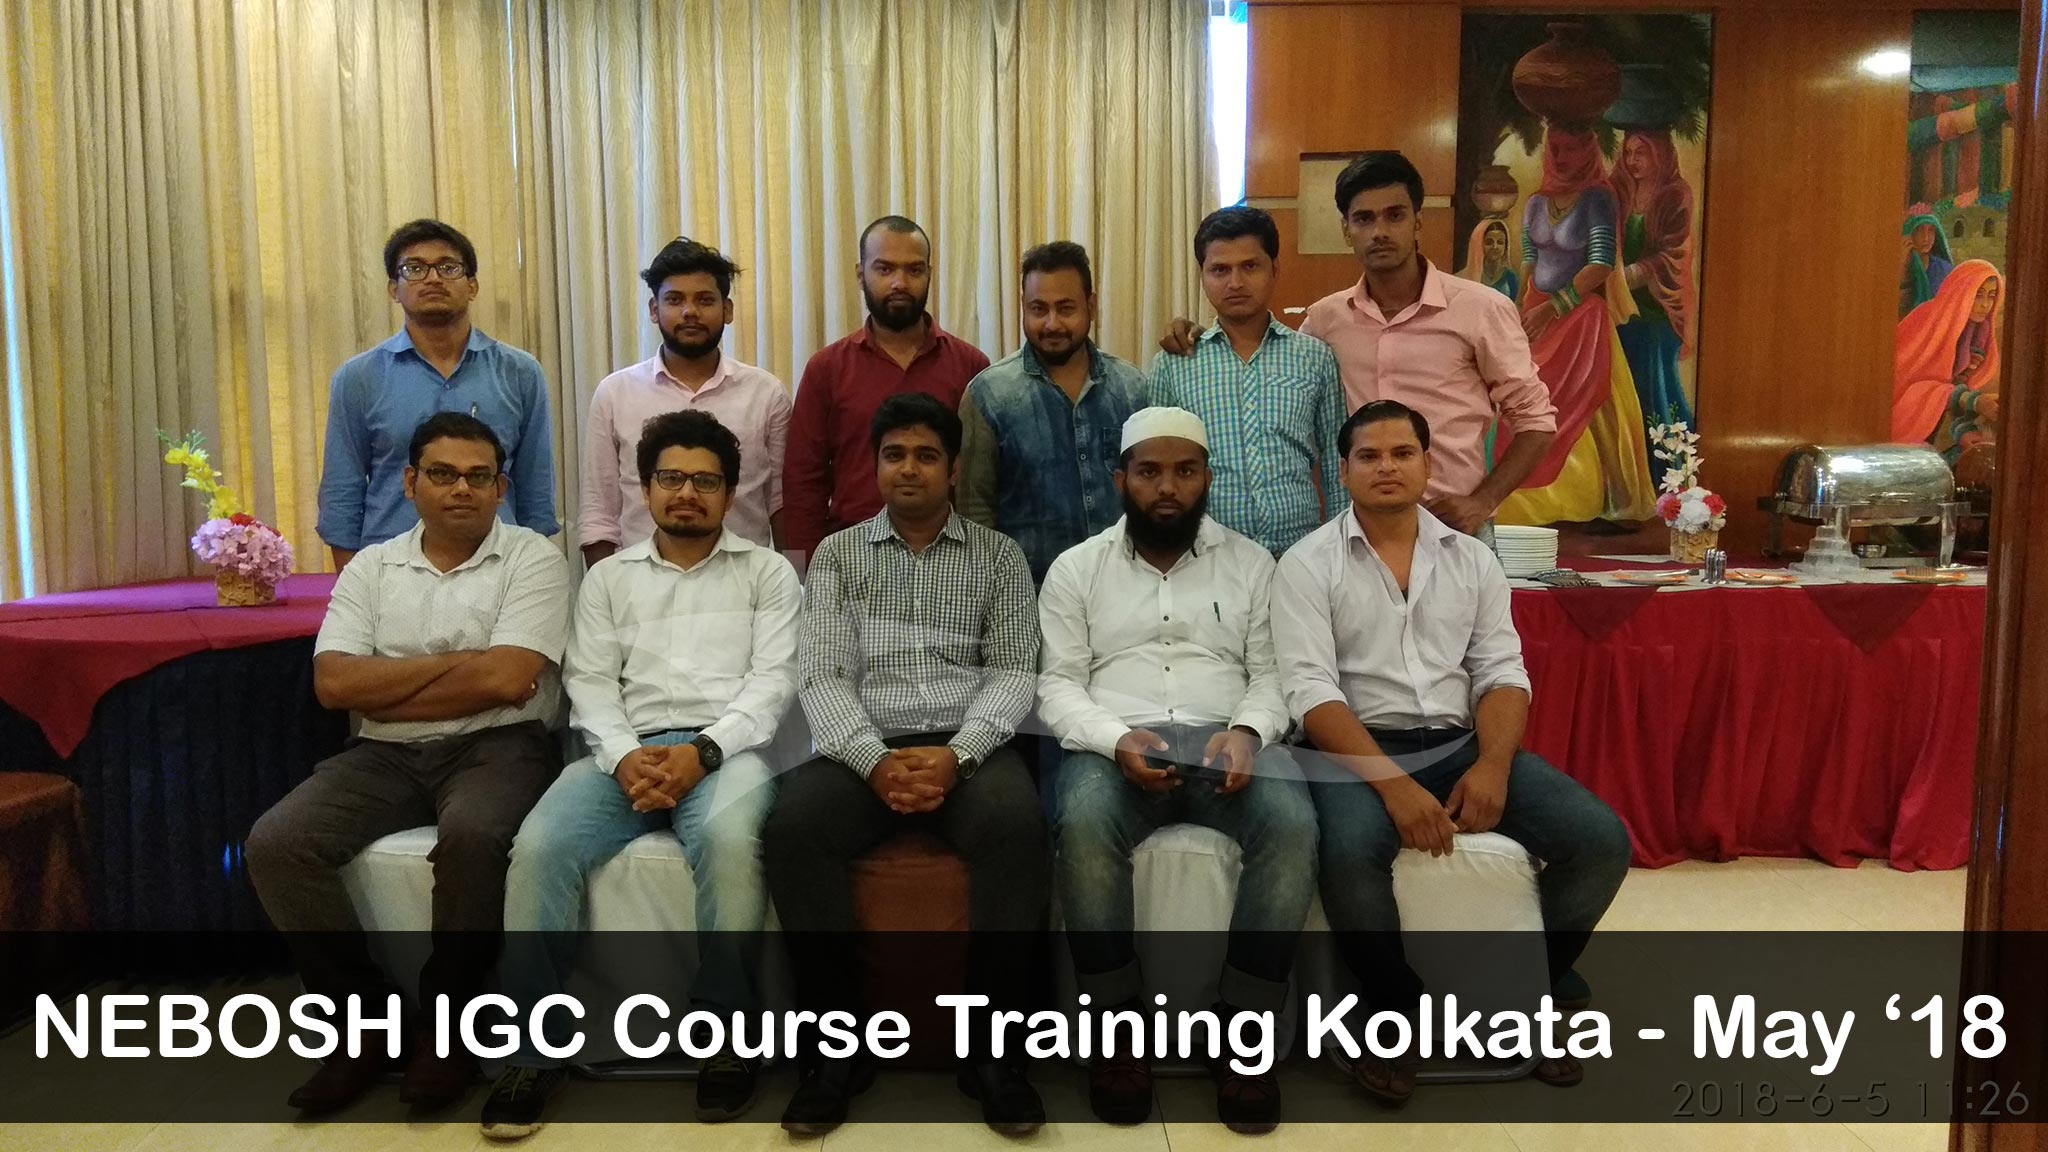 nebosh-igc-course-training-Kolkata